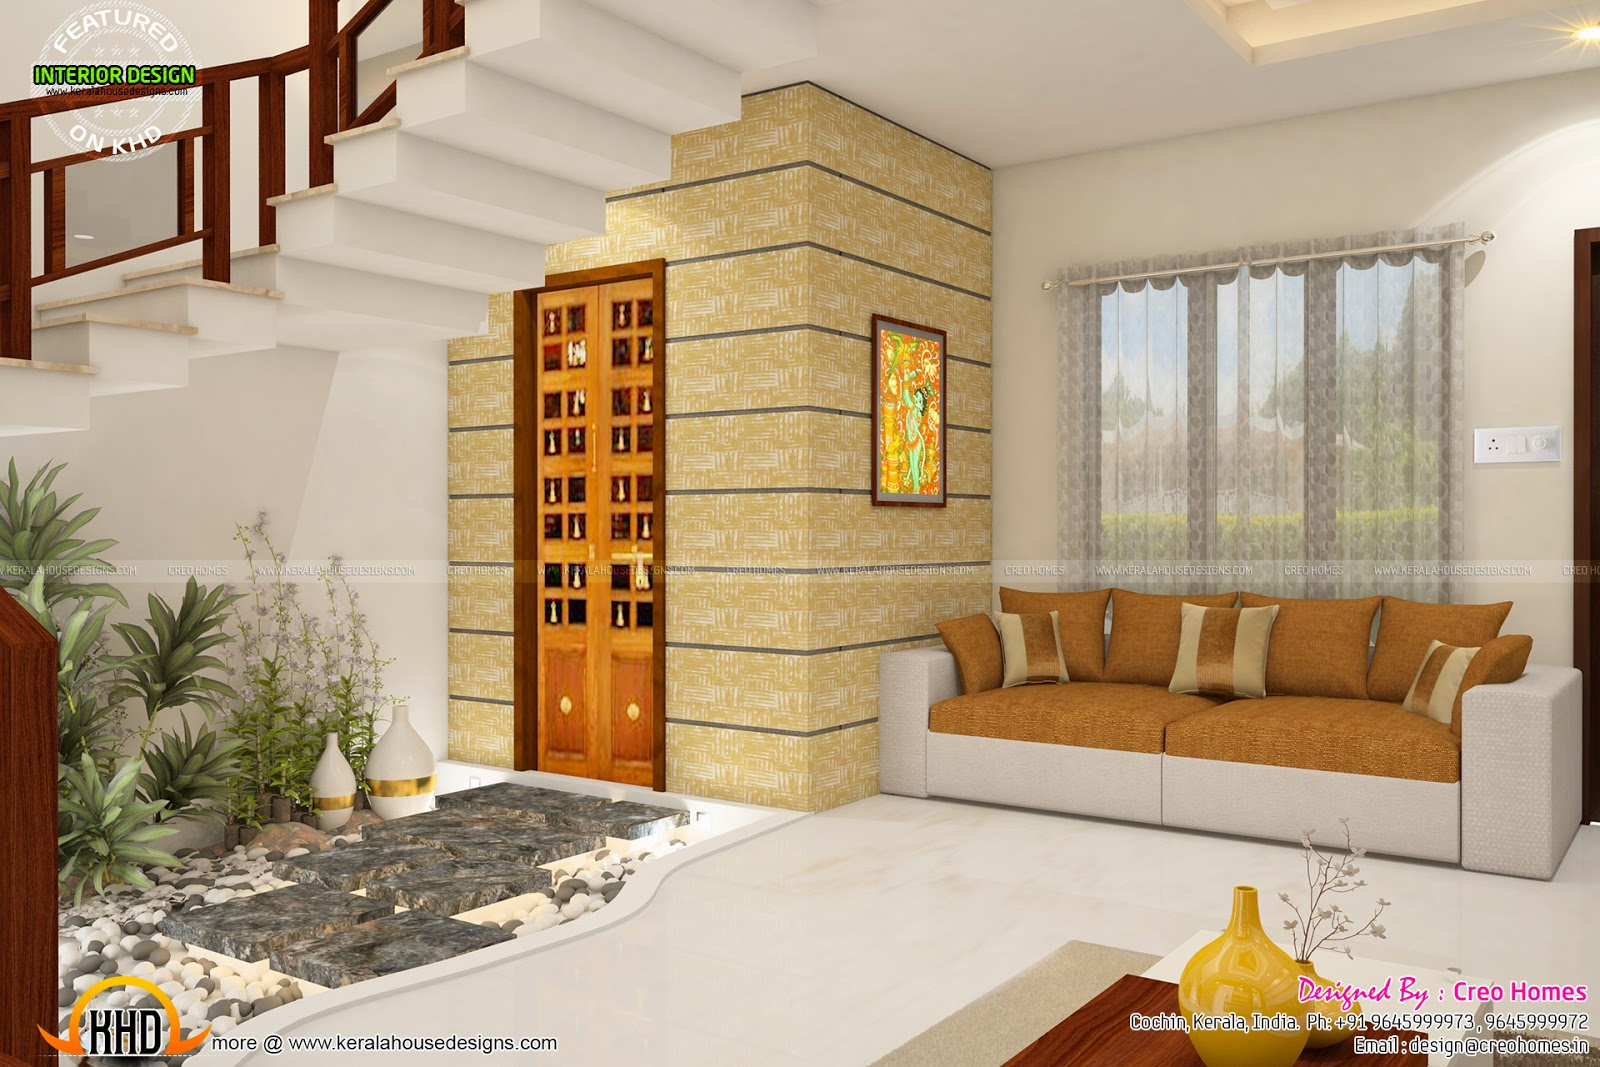 Total home interior solutions by creo homes kerala home for House design inside